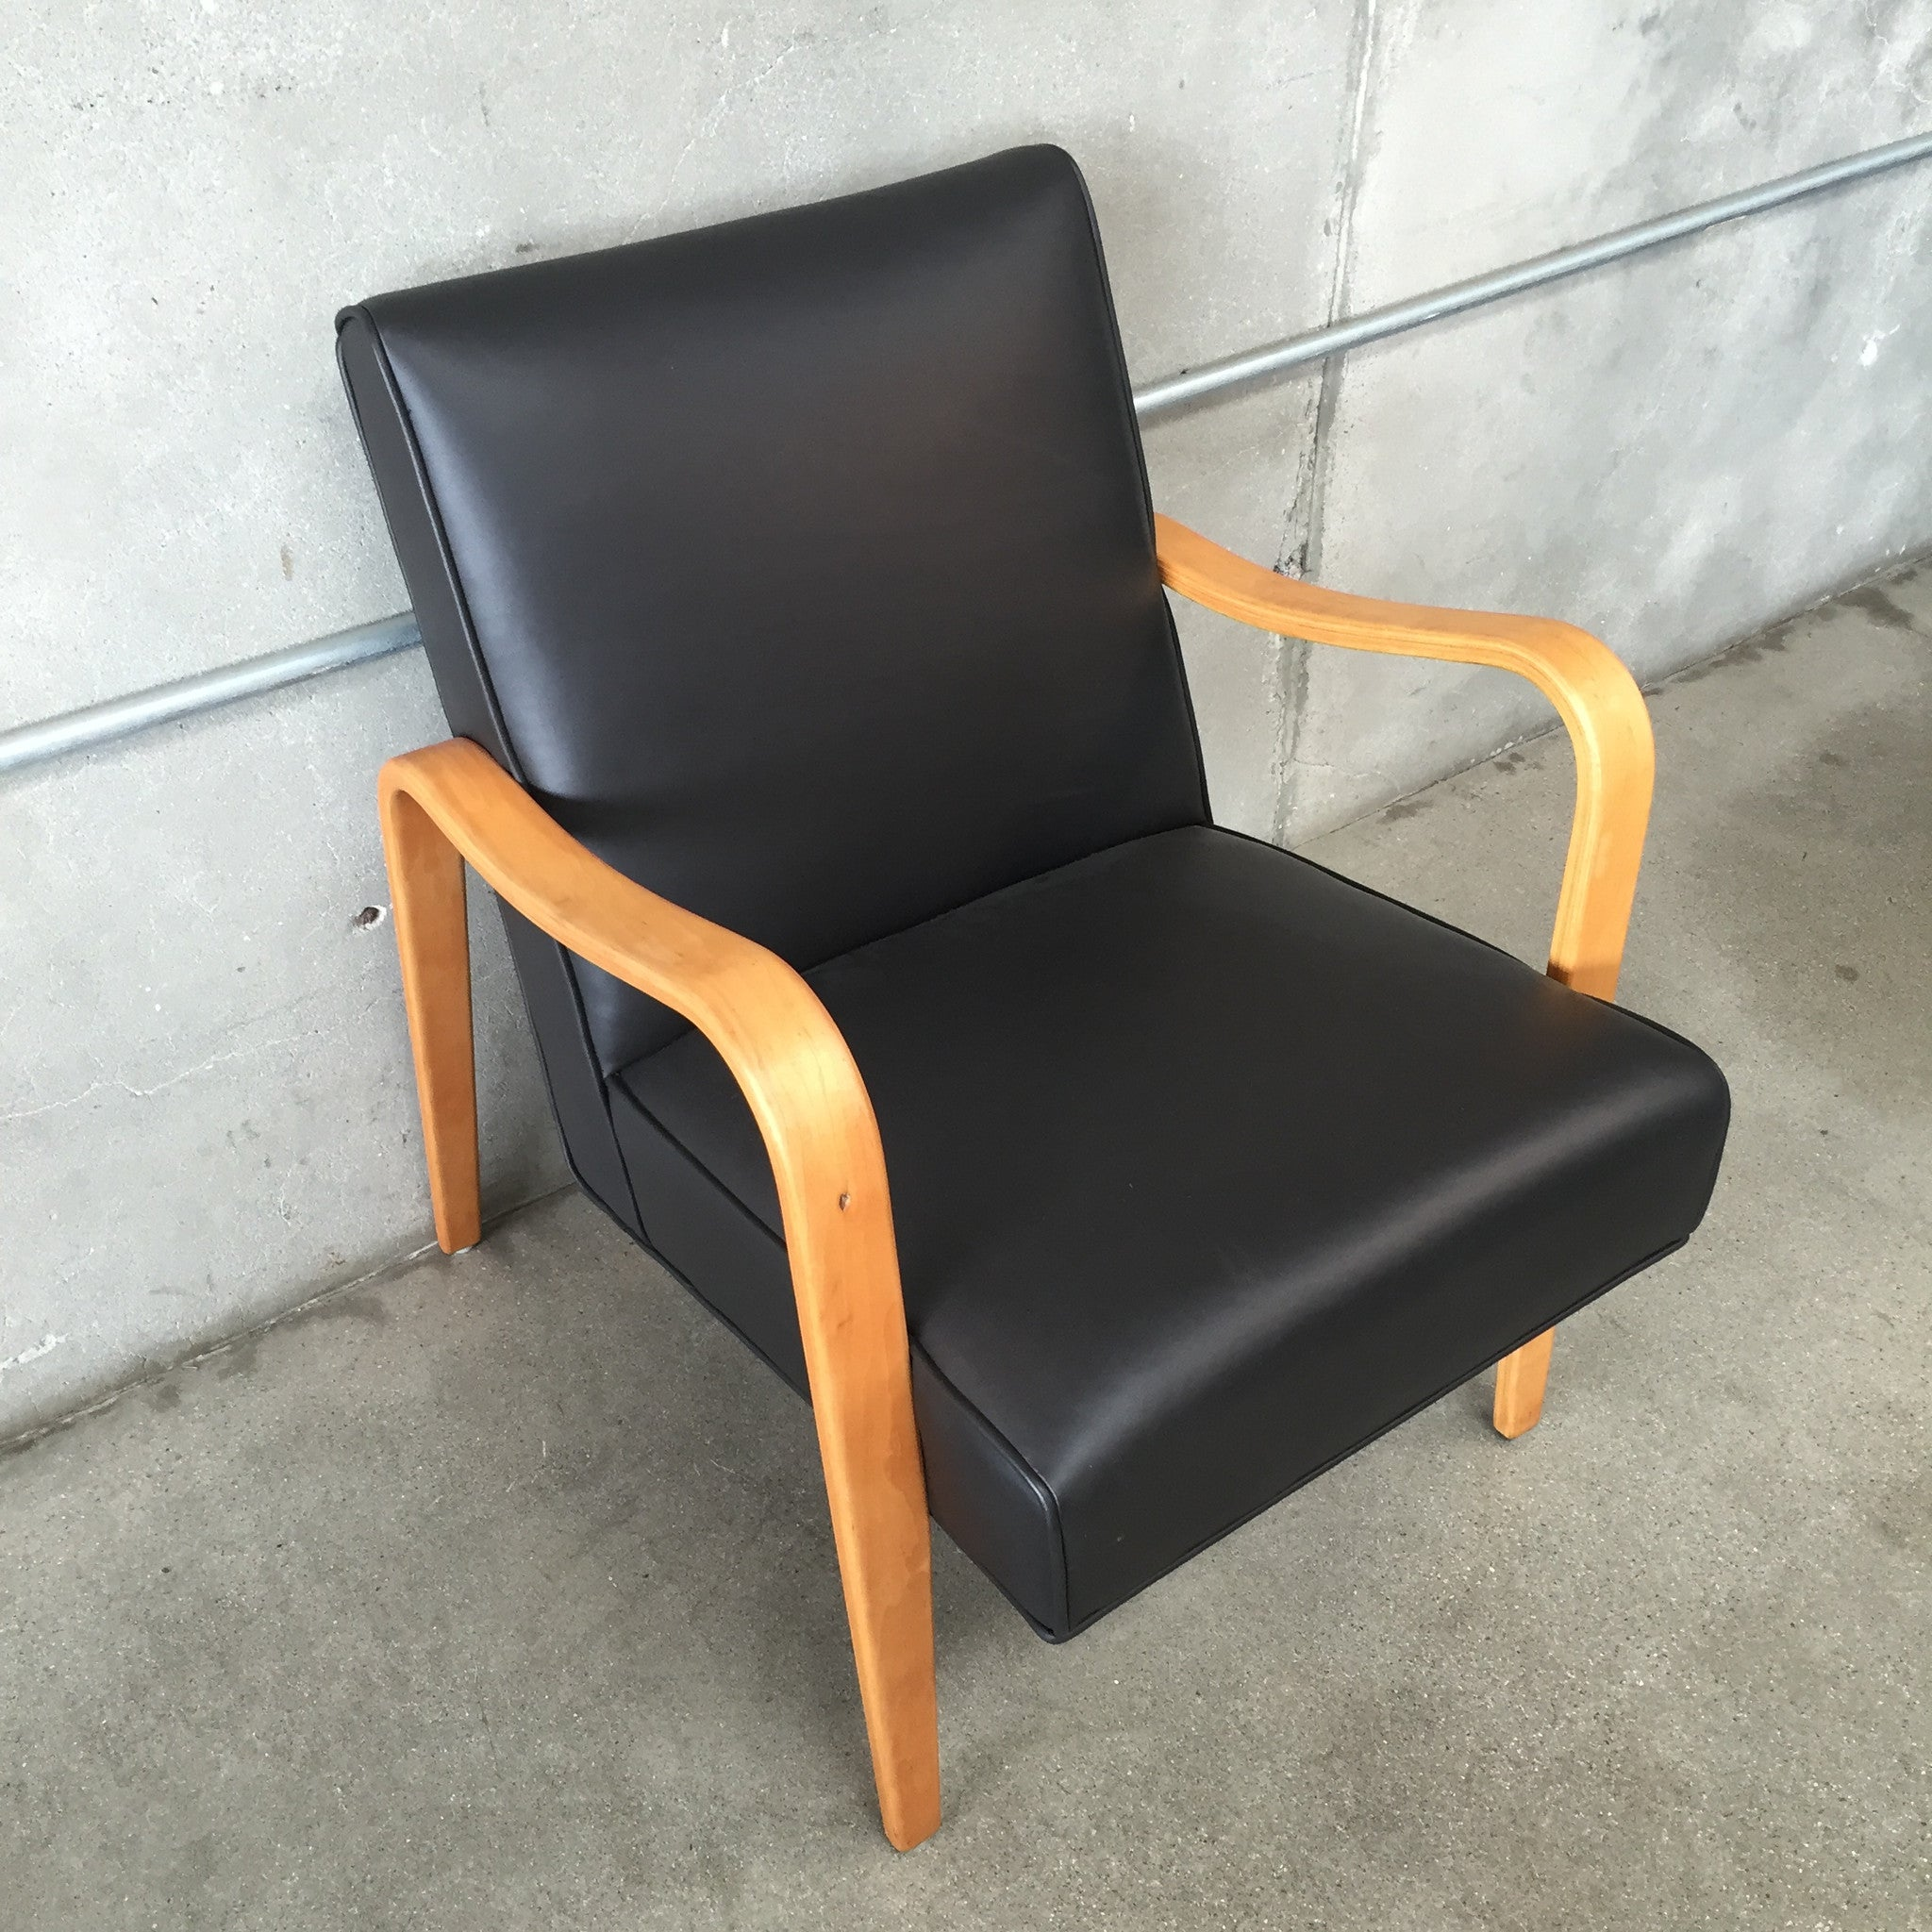 Bentwood lounge chair -  Thonet Bentwood Lounge Chair With New Leather Upholstery